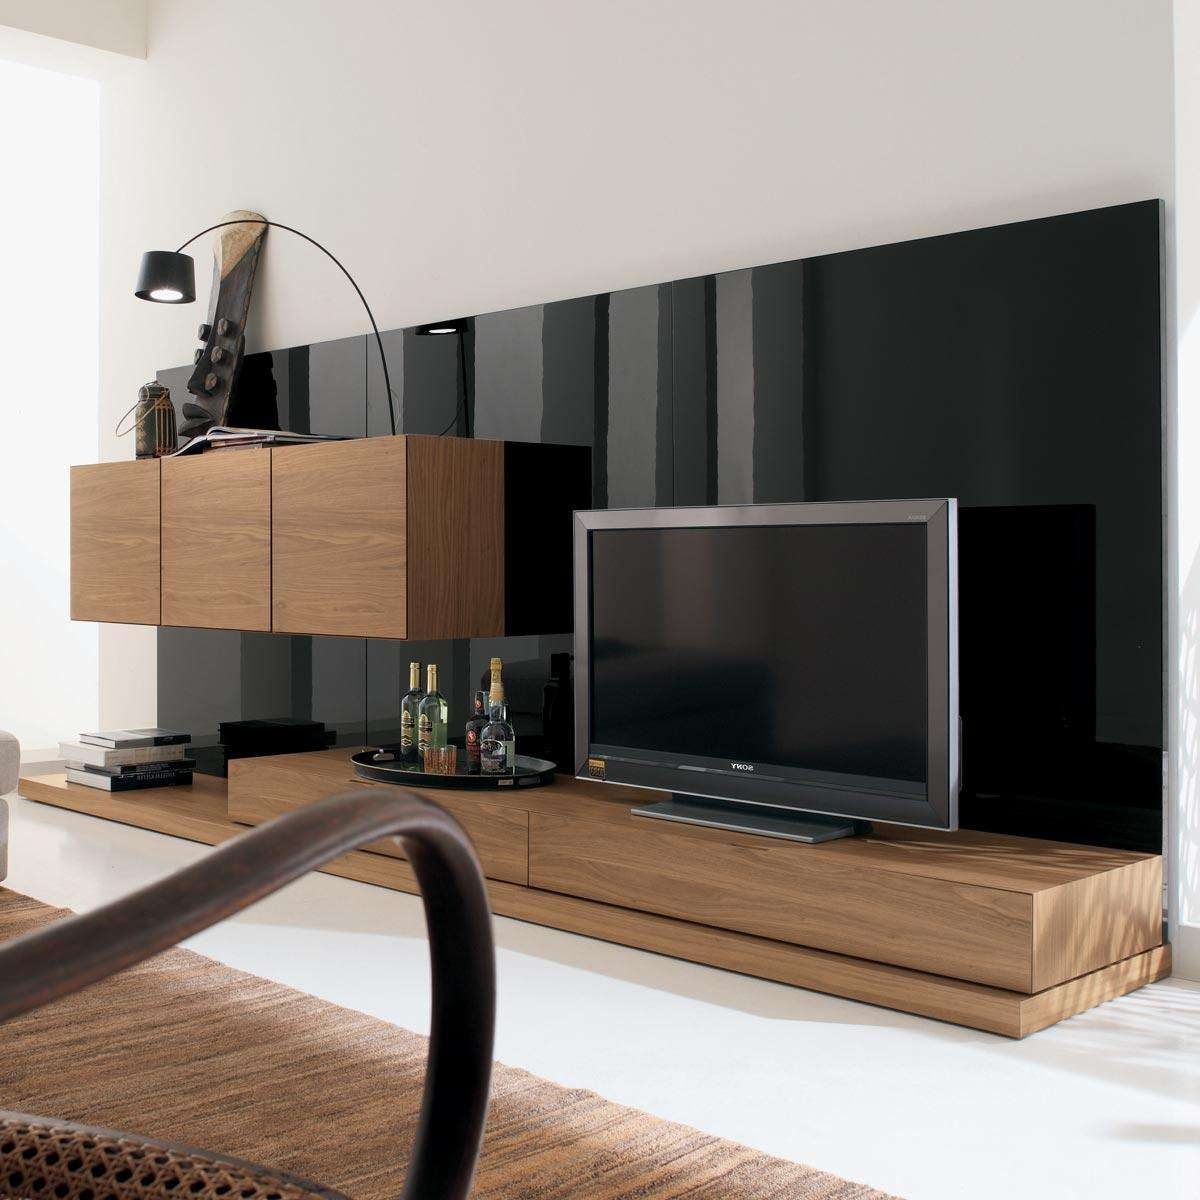 Modern Nature Wood Big Screen Tv Stand Wall Mounted Living Room Regarding Long Low Tv Stands (View 9 of 15)